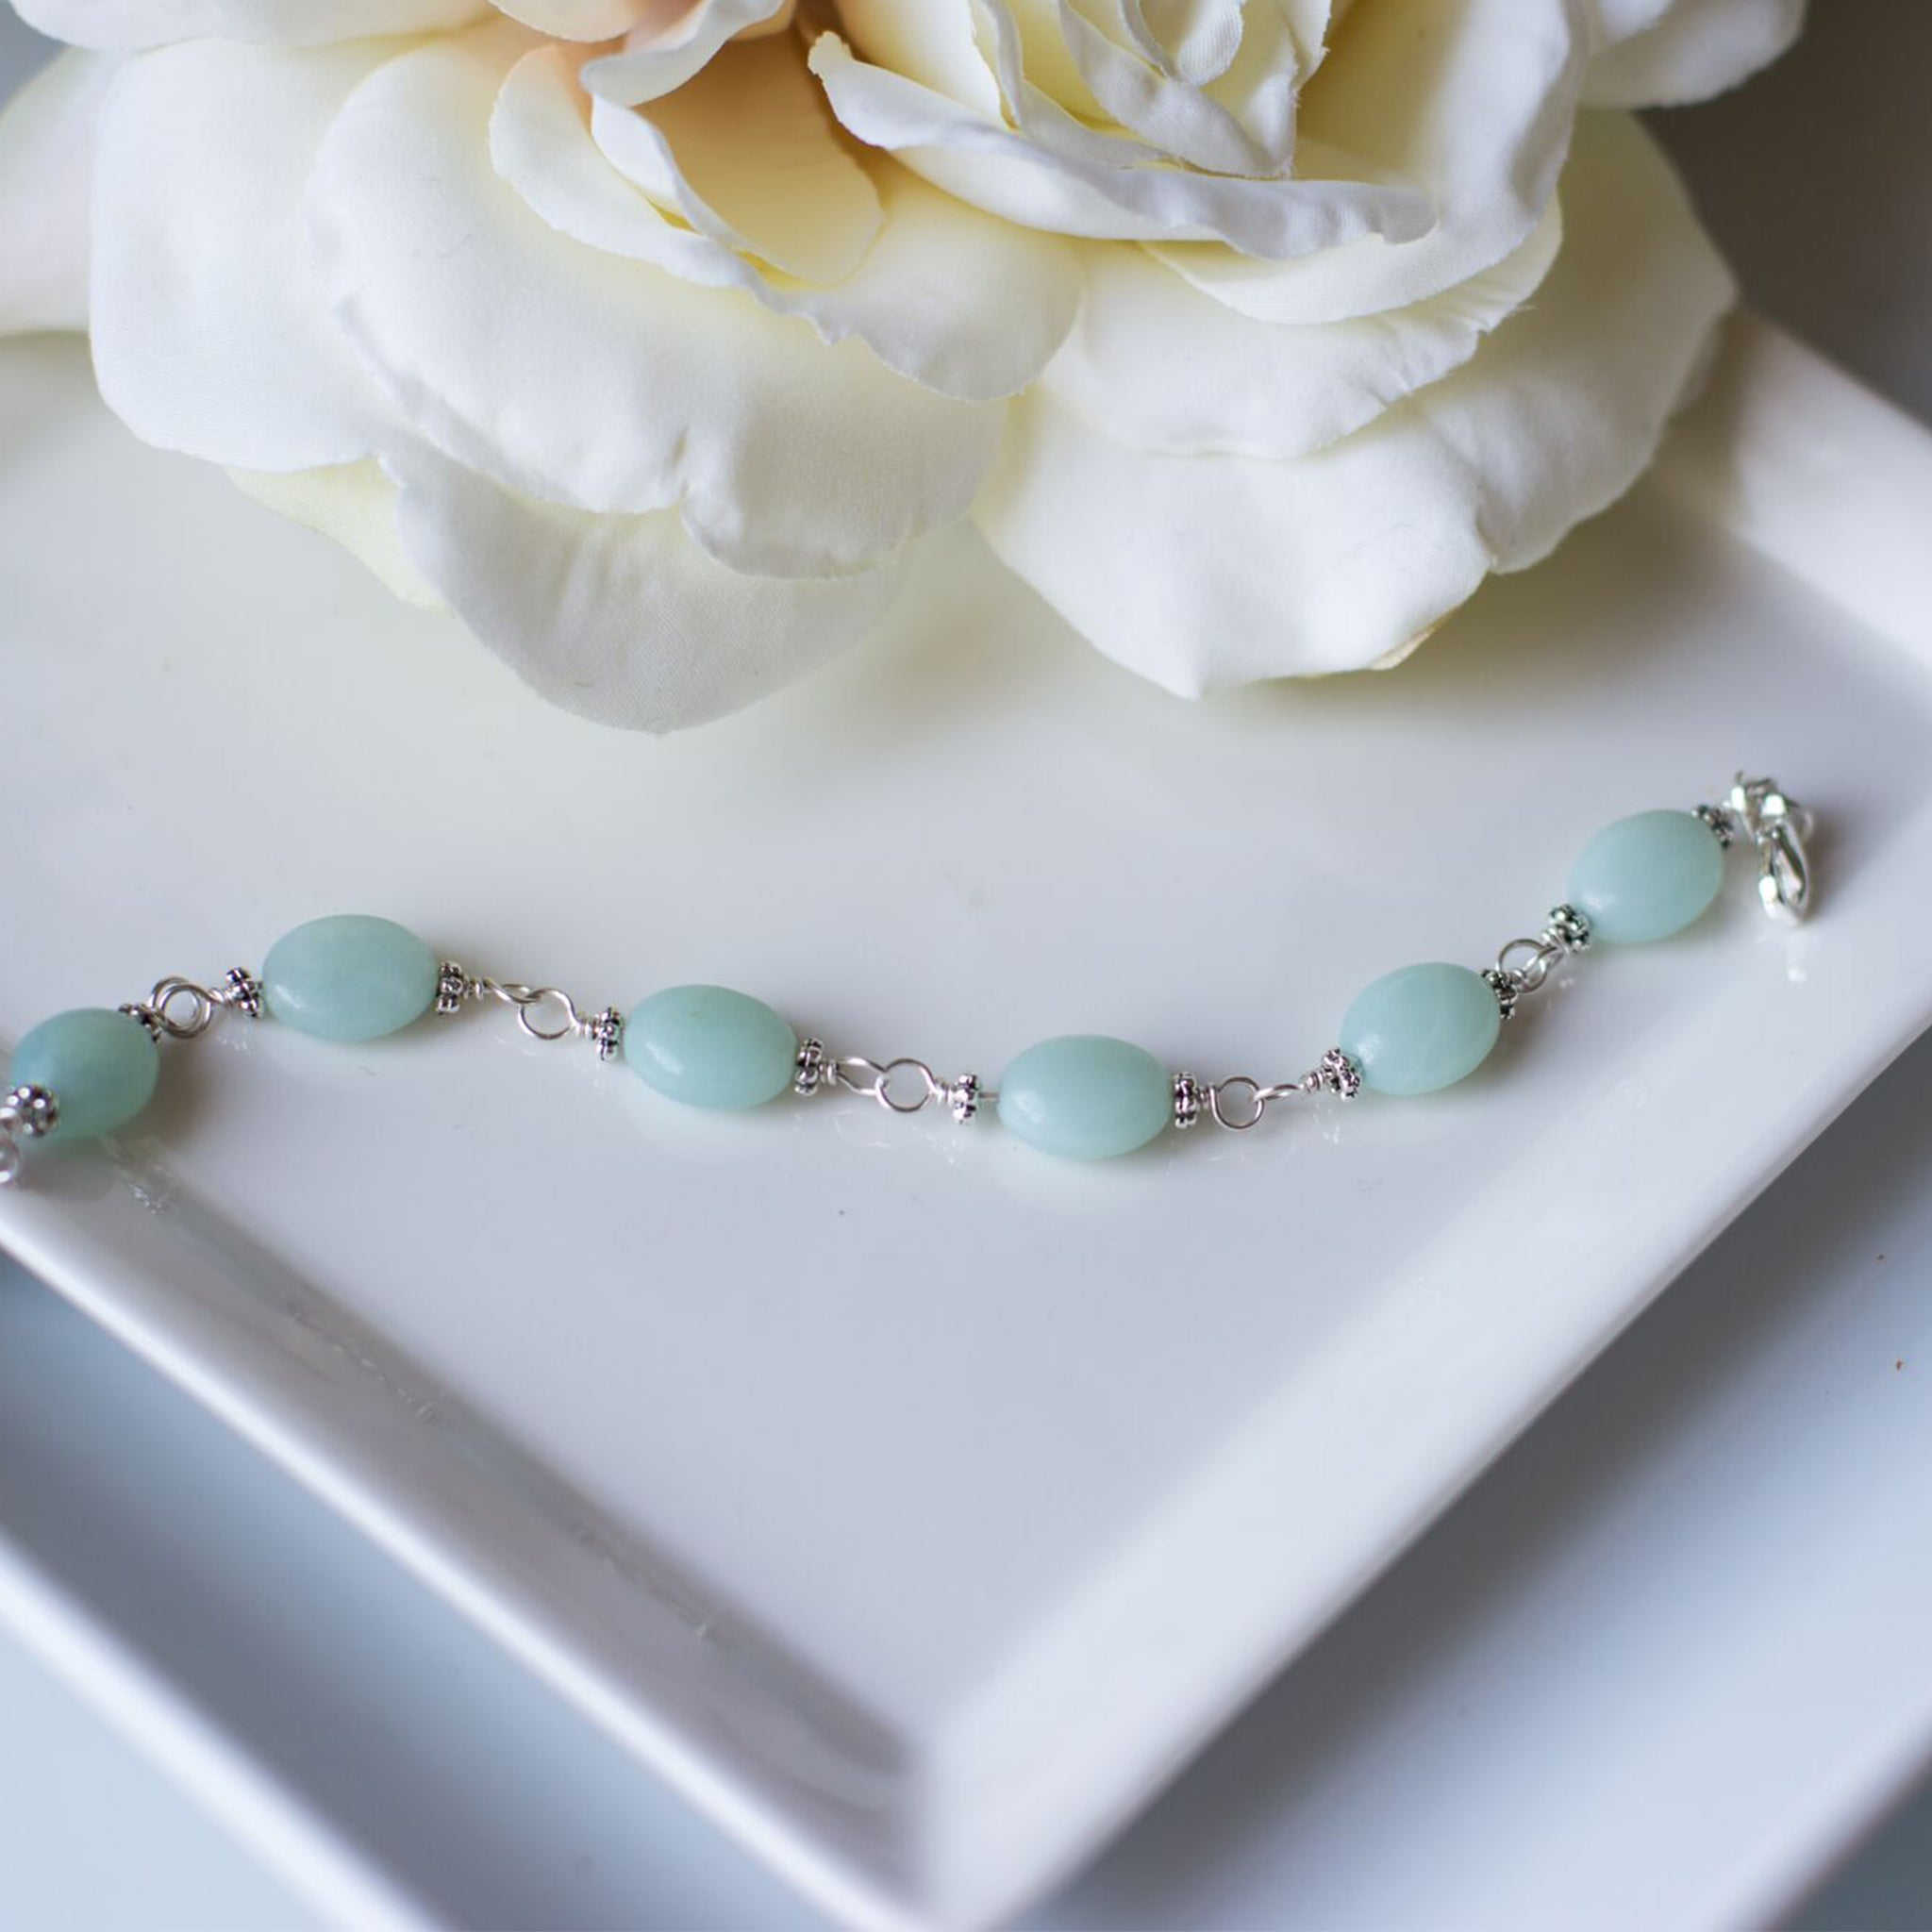 Christmas Gifts for Her - Handmade Amazonite Bracelet - Swanky Collection